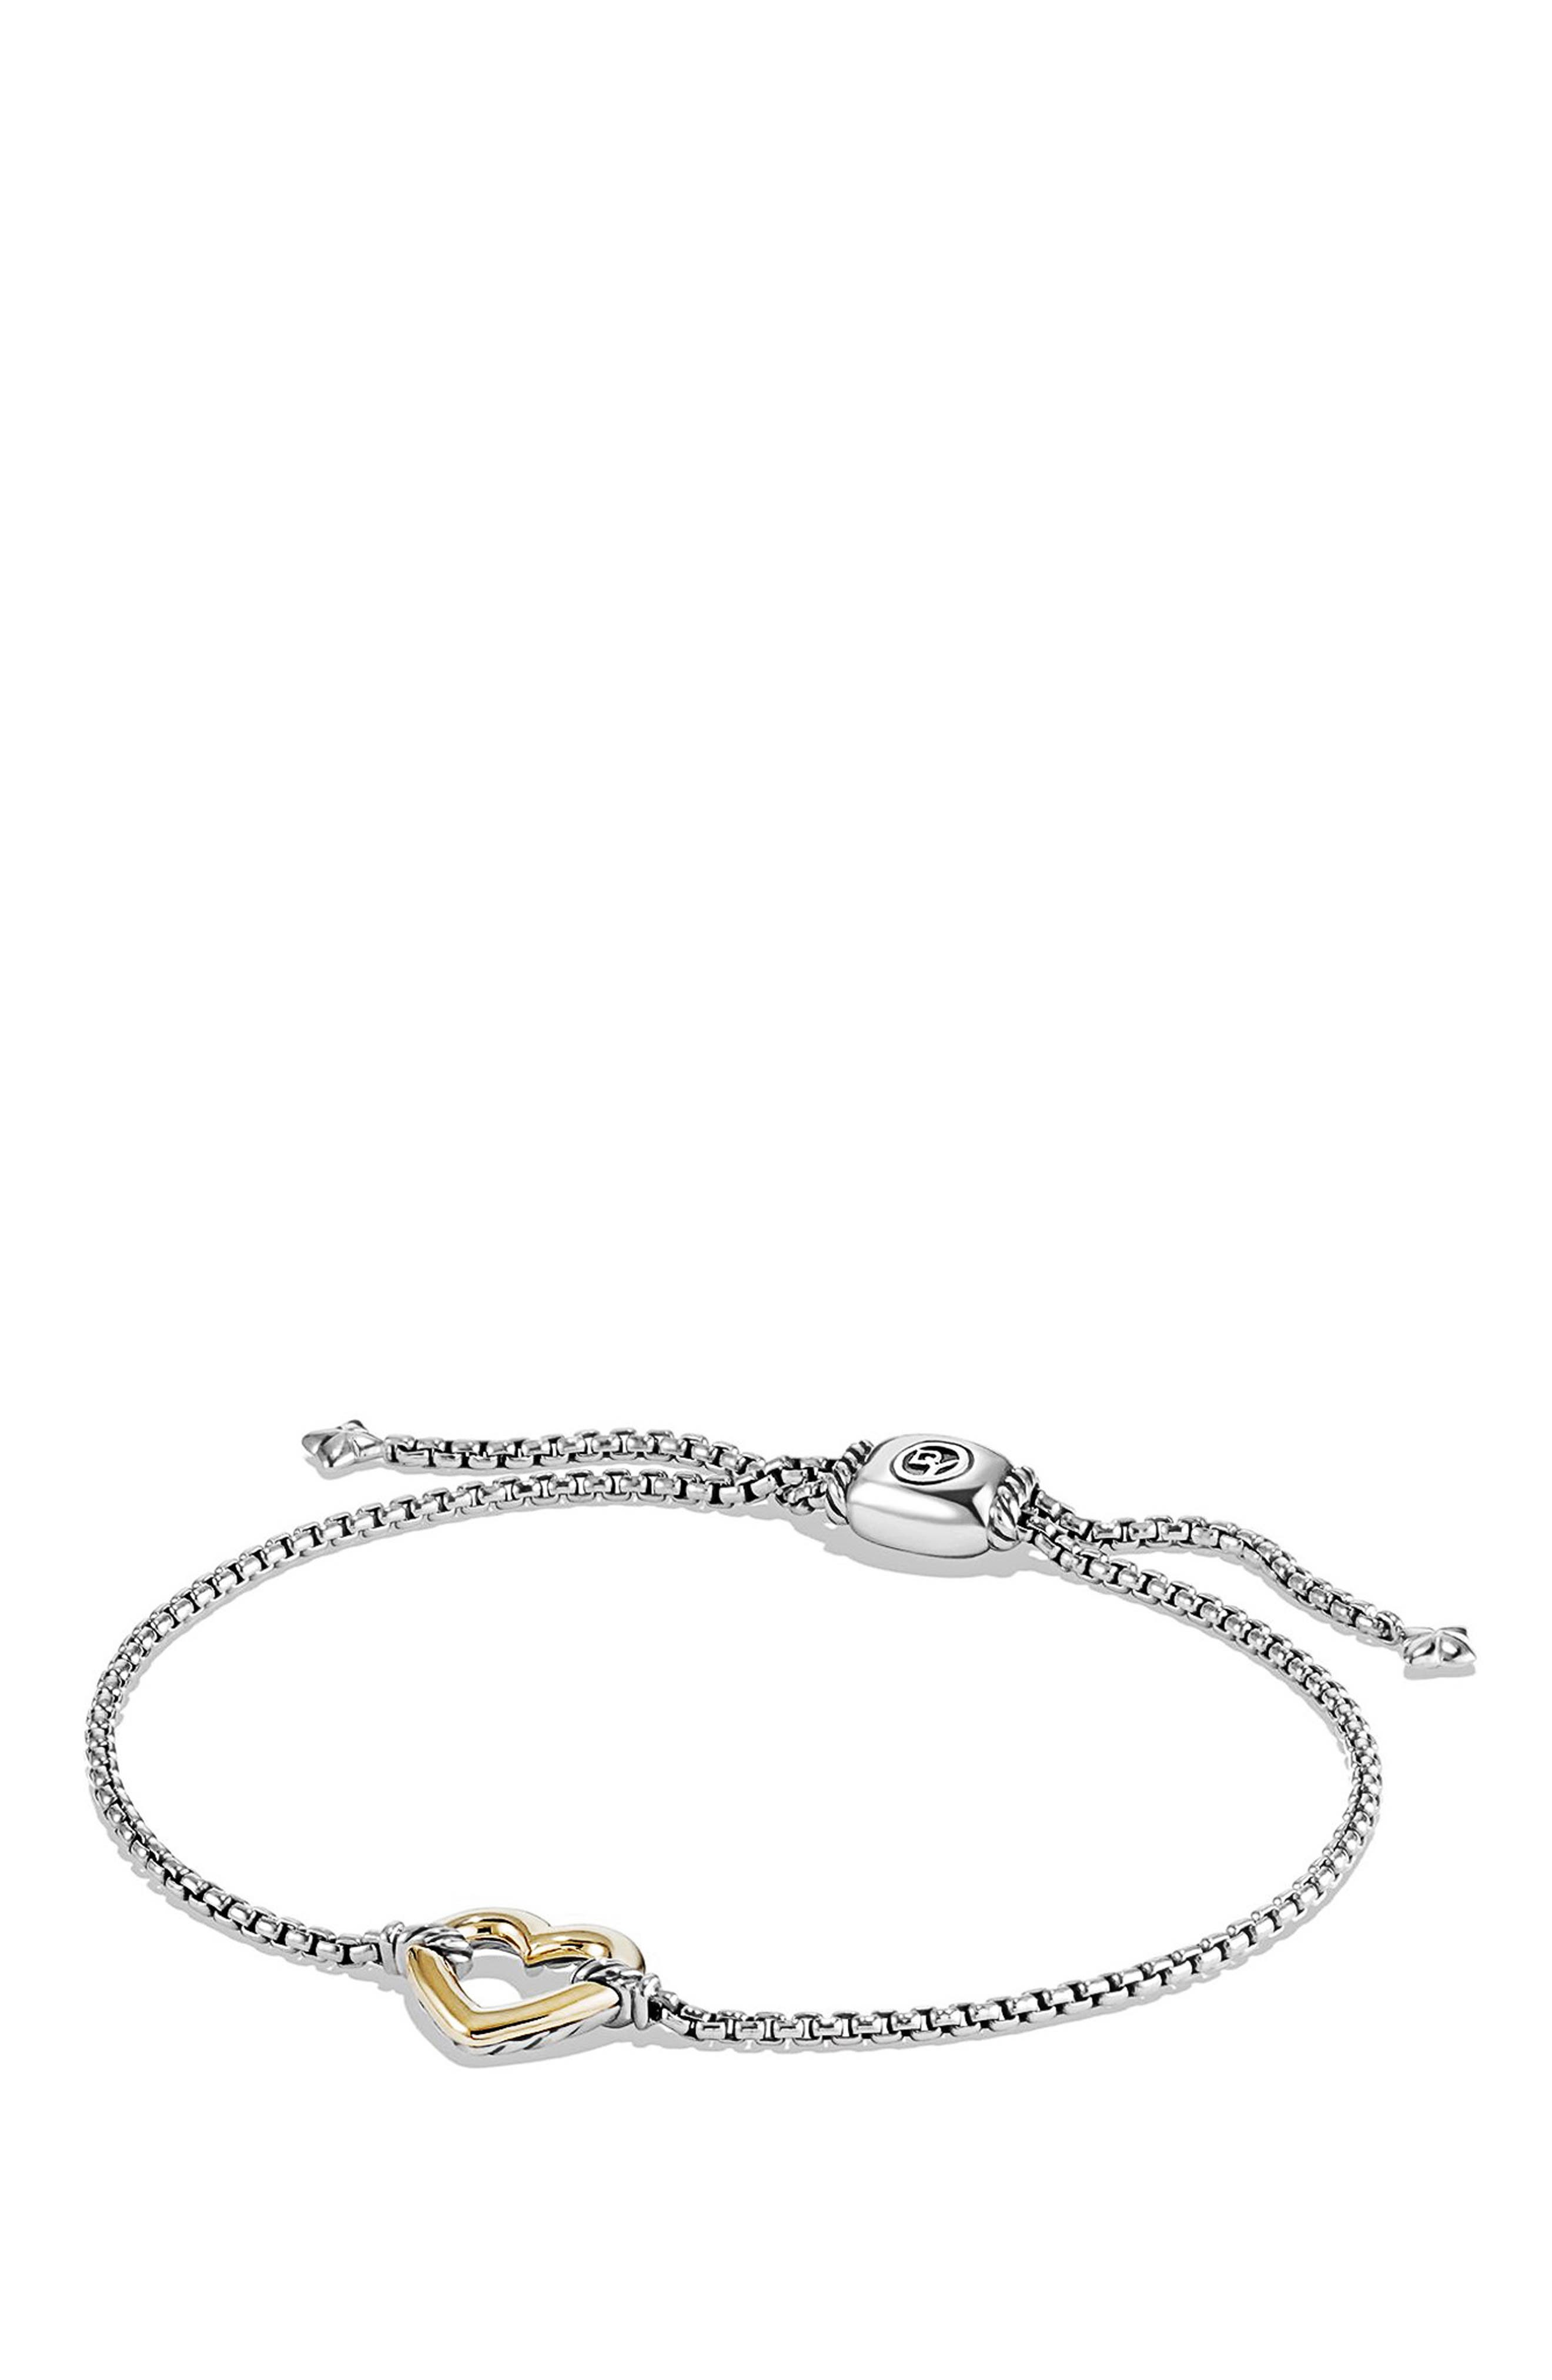 'Cable Collectibles' Heart Station Bracelet with 18K Gold,                             Main thumbnail 1, color,                             SILVER/ GOLD